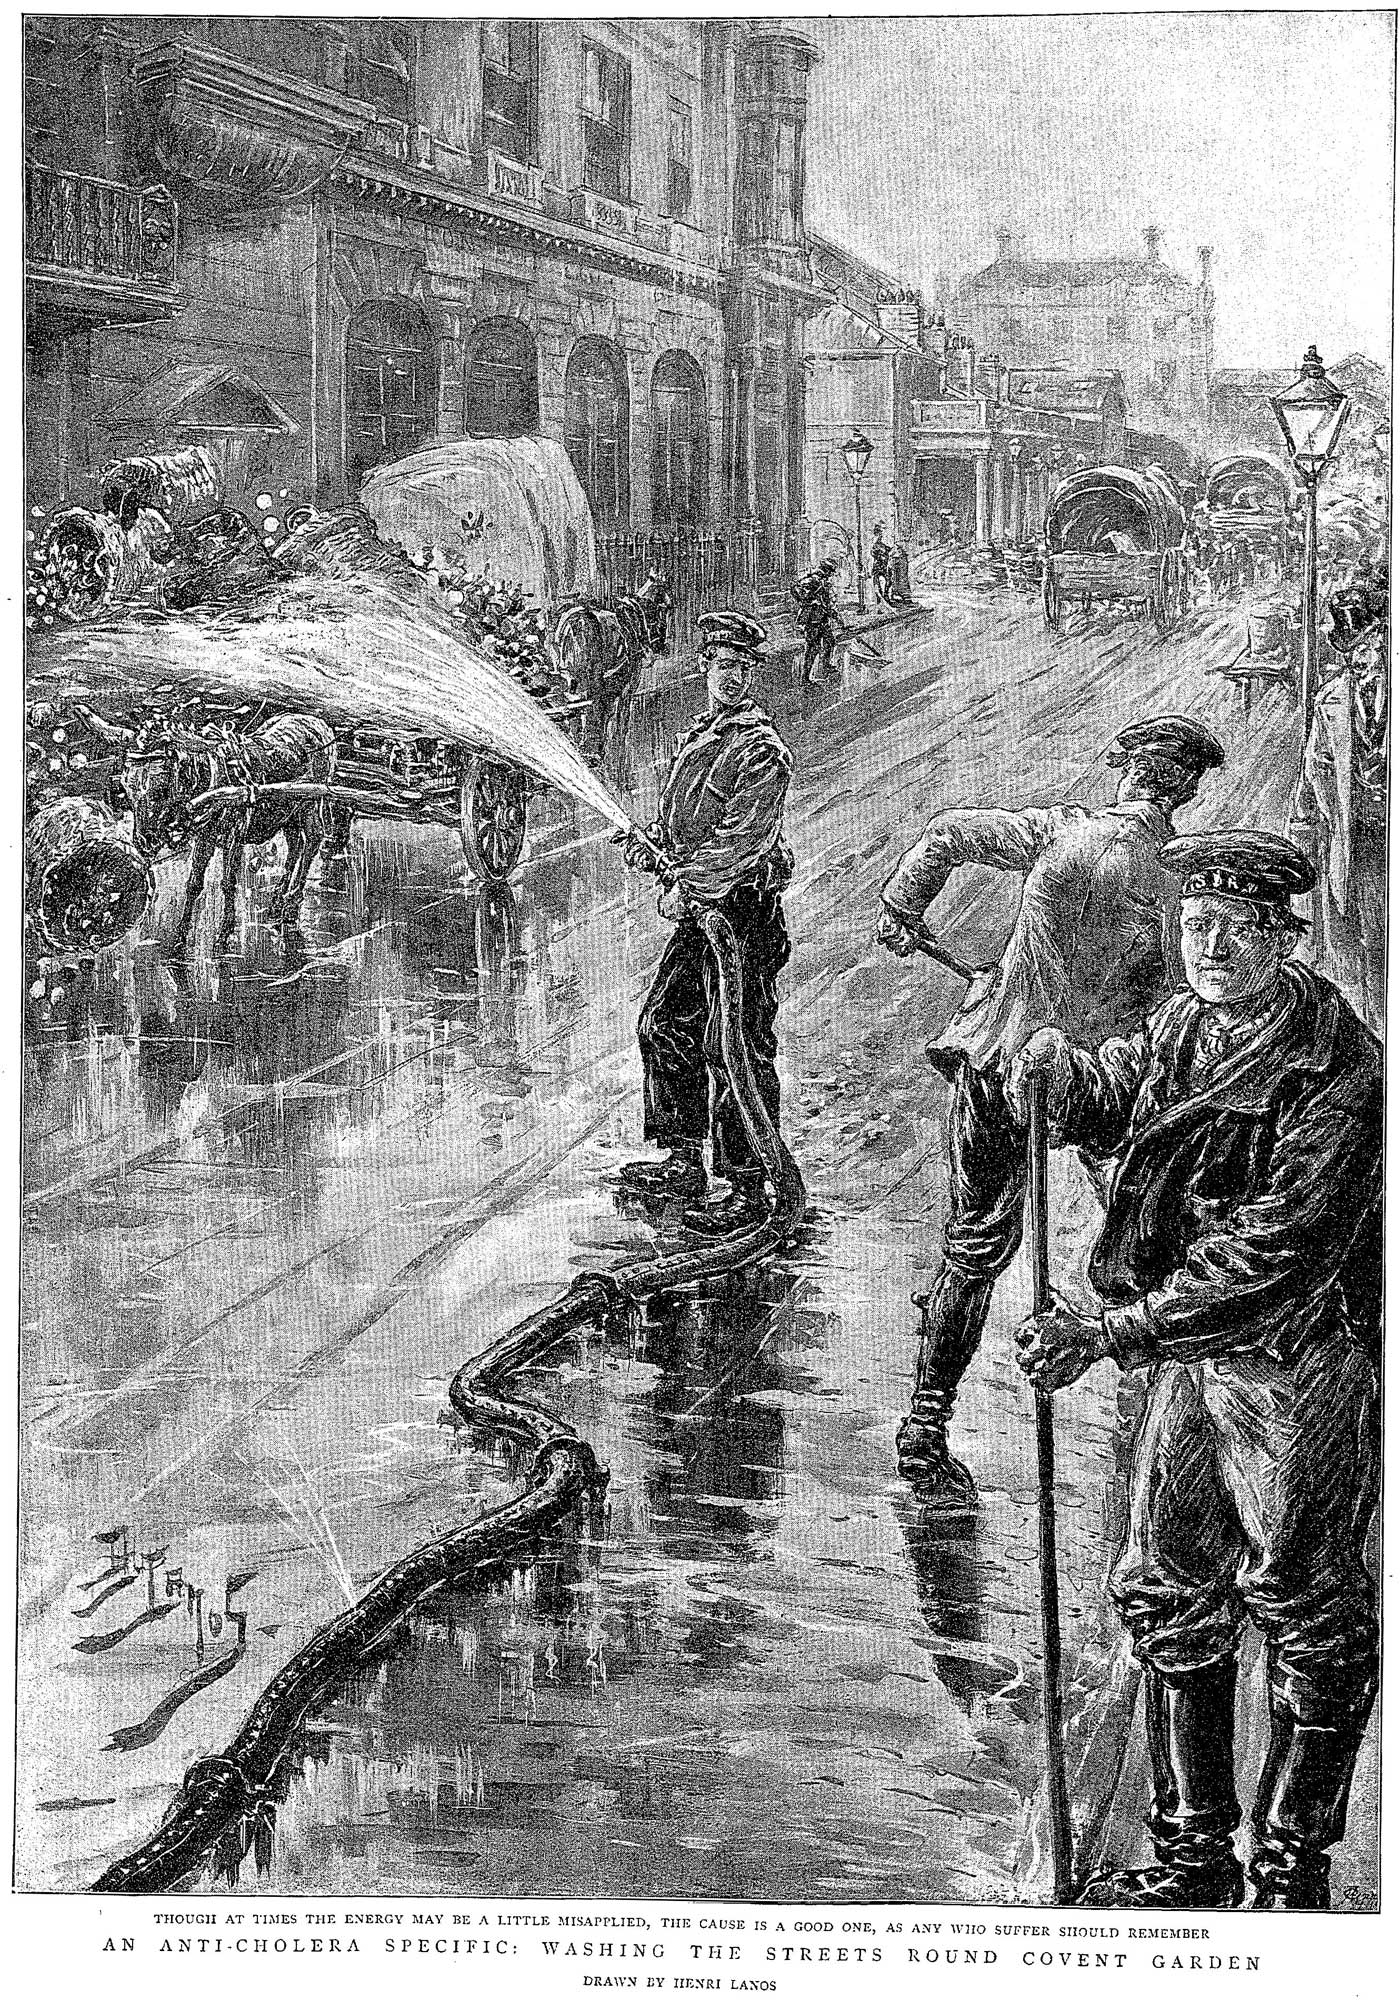 Newspaper illustration showing people washing the streets round Covent Garden as a precaution against cholera